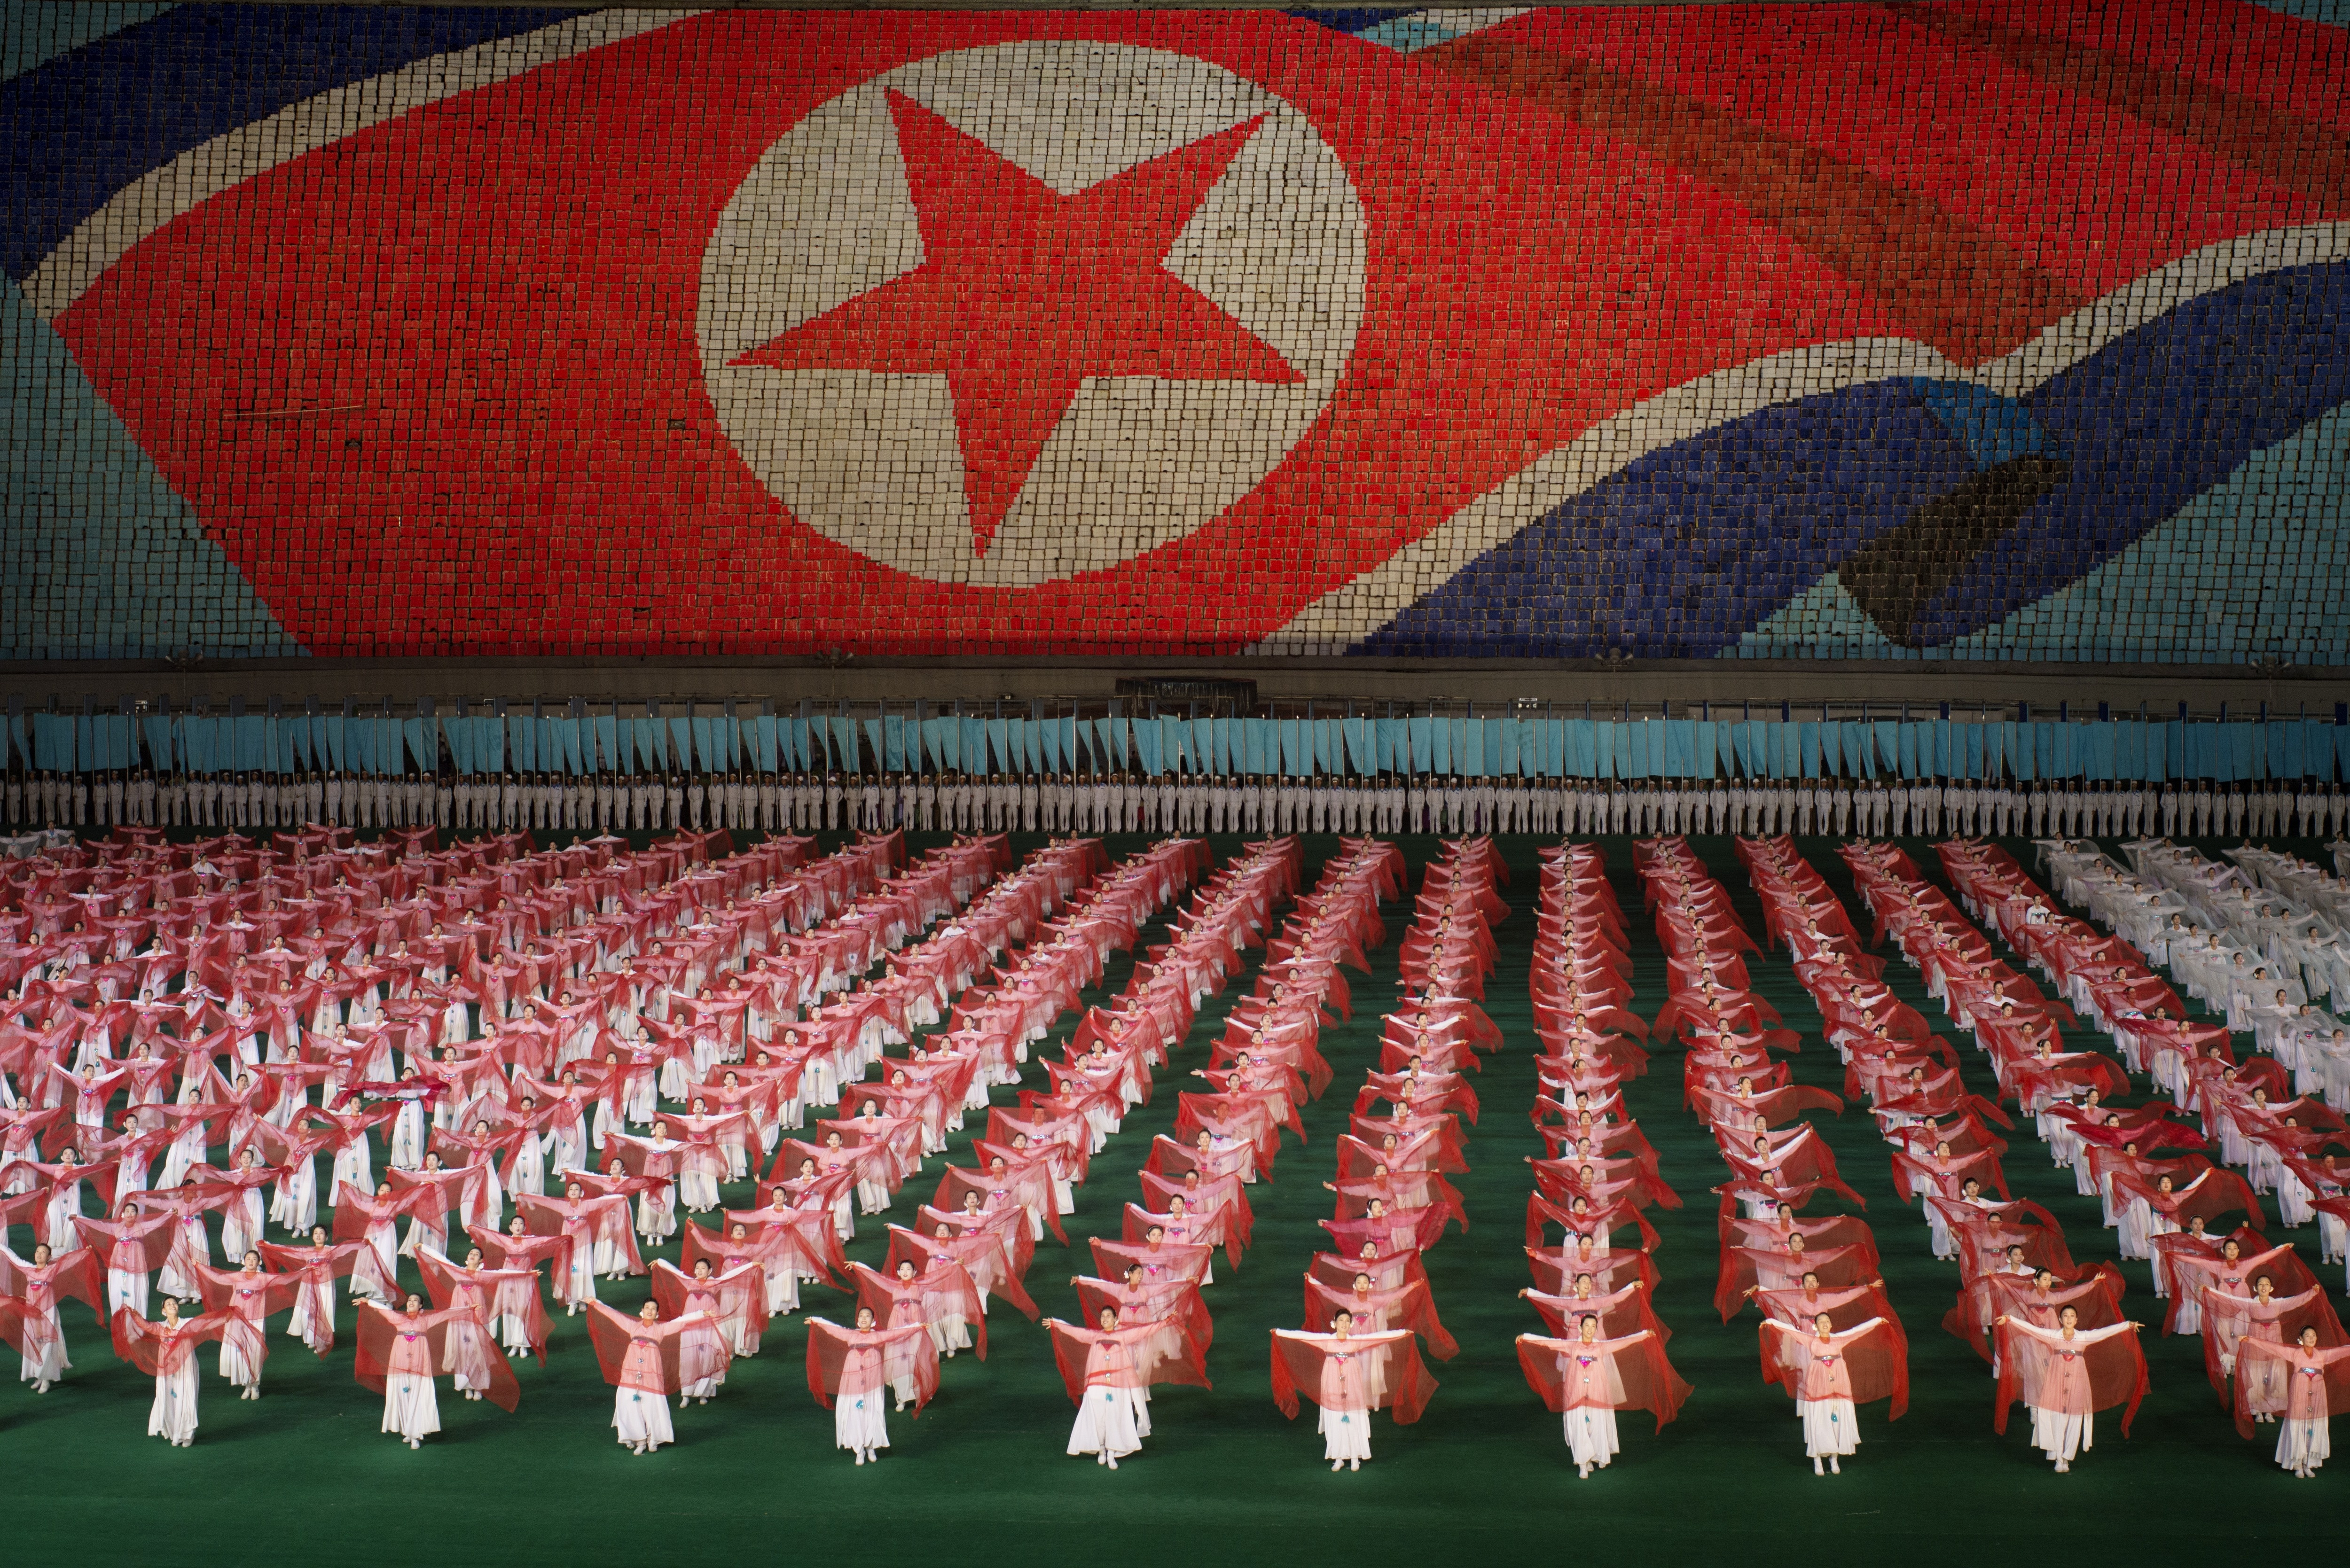 The Mass Games being performed in Pyongyang.